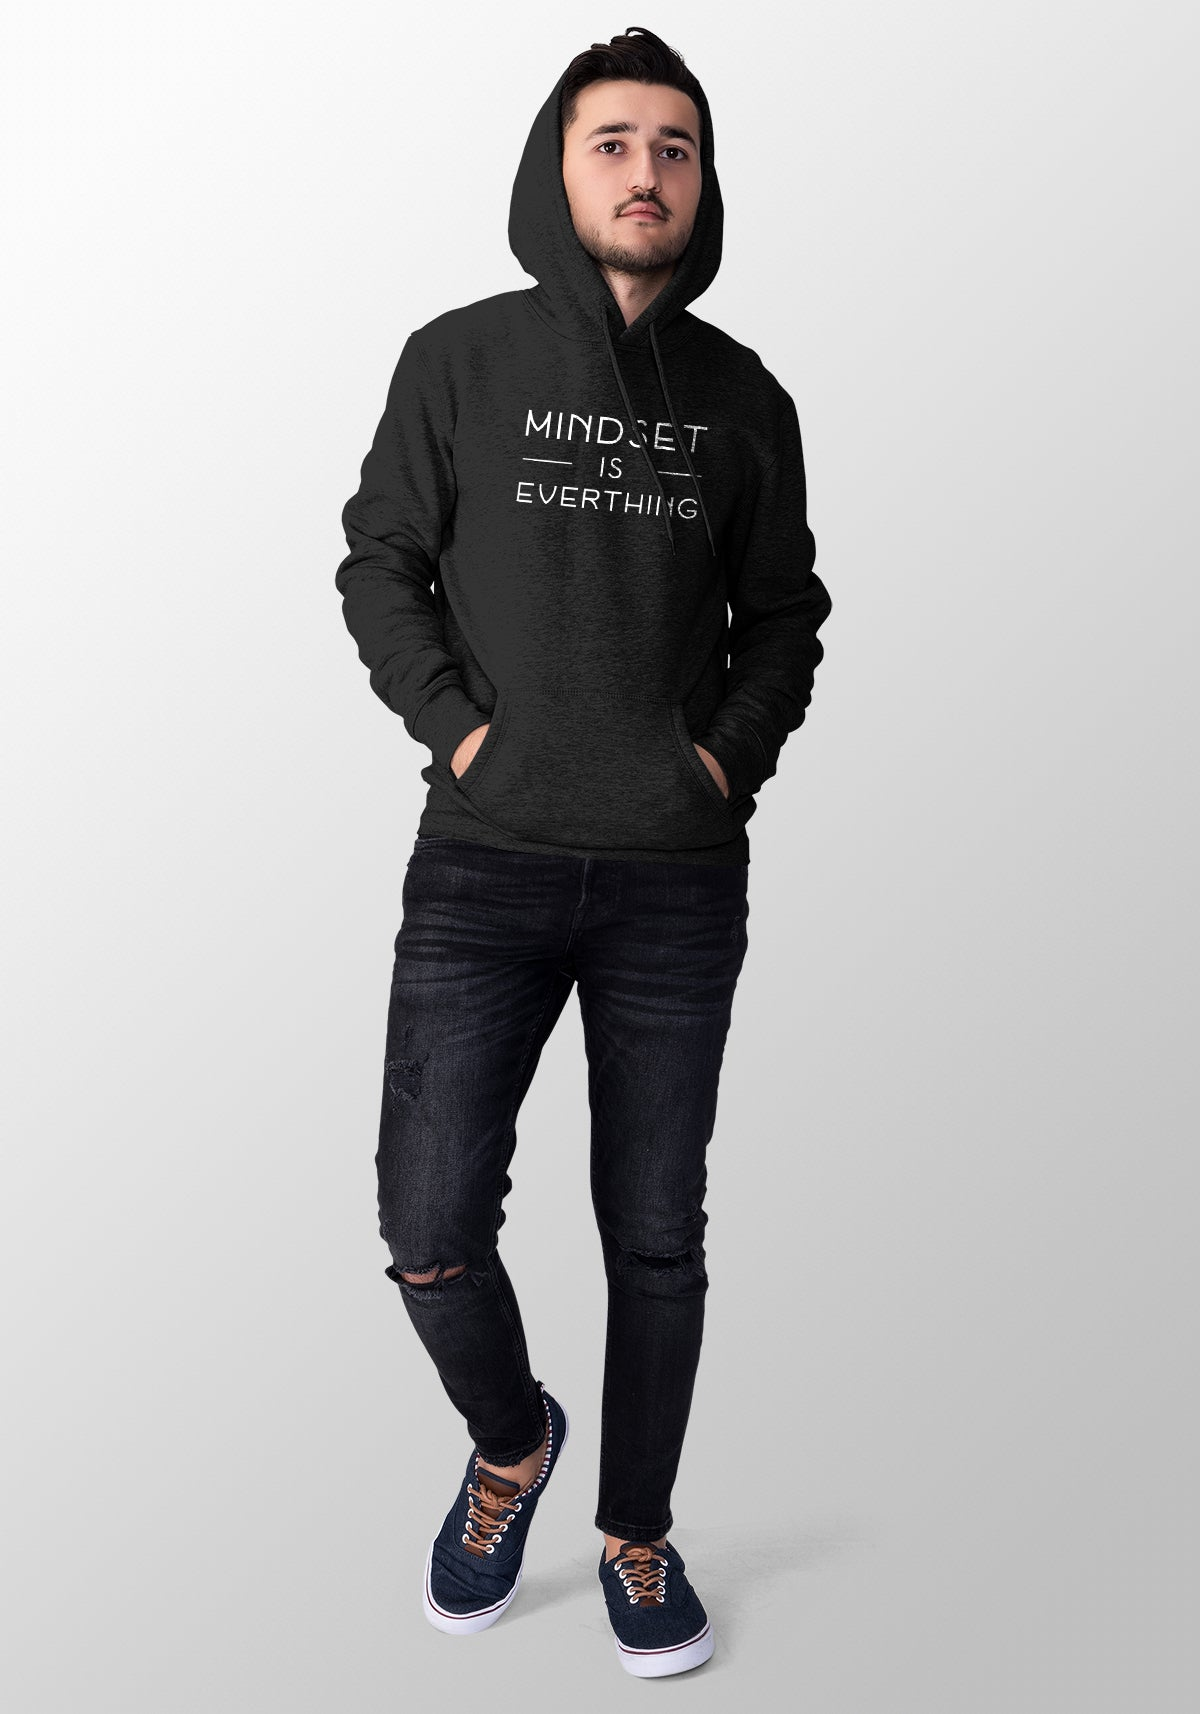 Mindset is Everthing Hoodie Men's